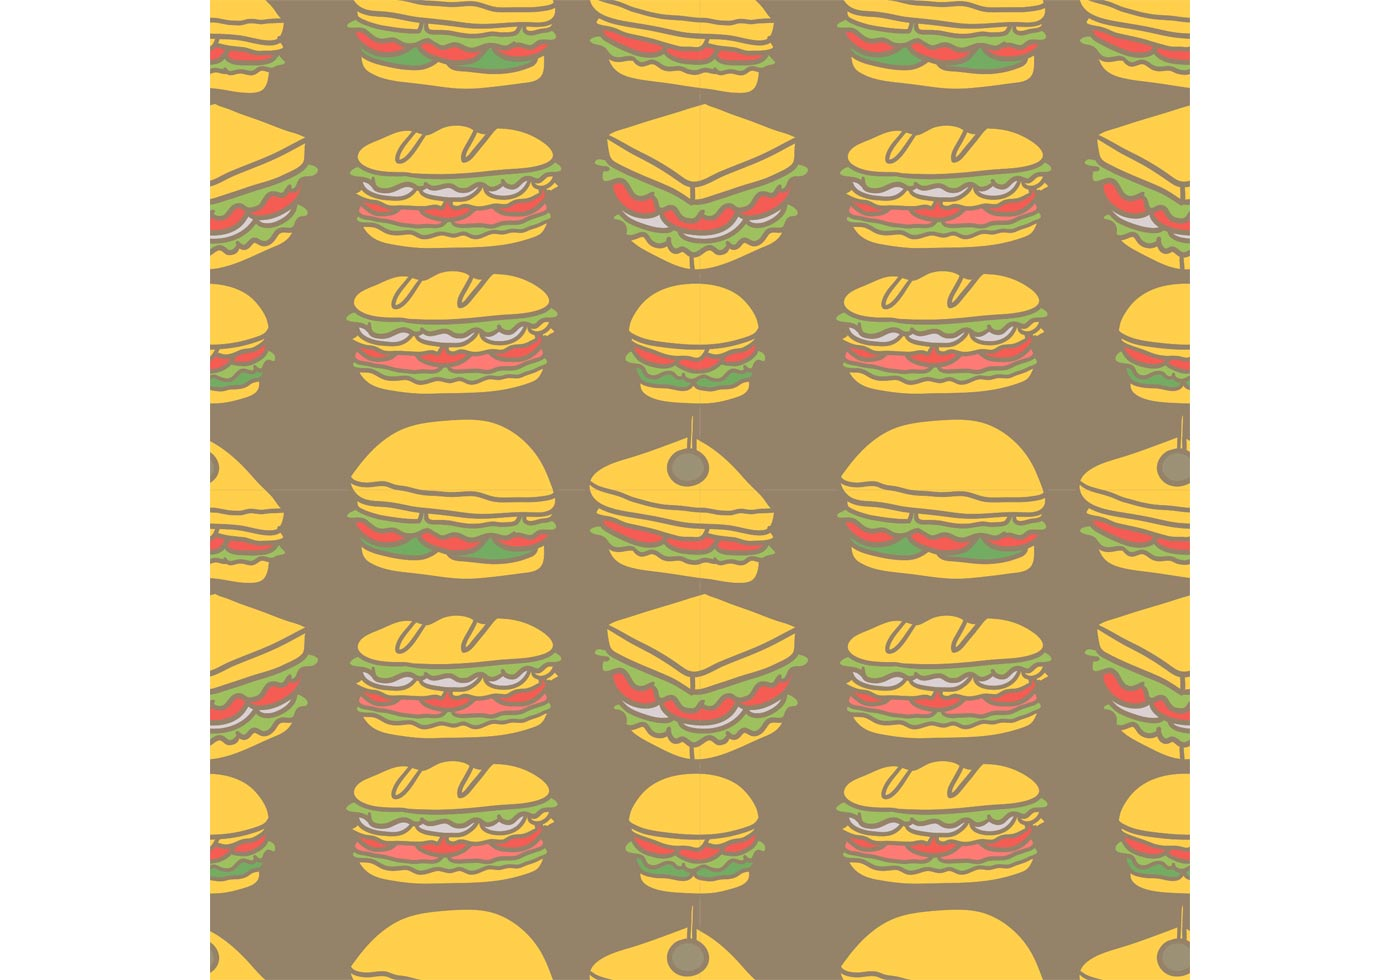 Cute Cartoon Horse Wallpaper Free Club Sandwich Seamless Pattern Vector Download Free